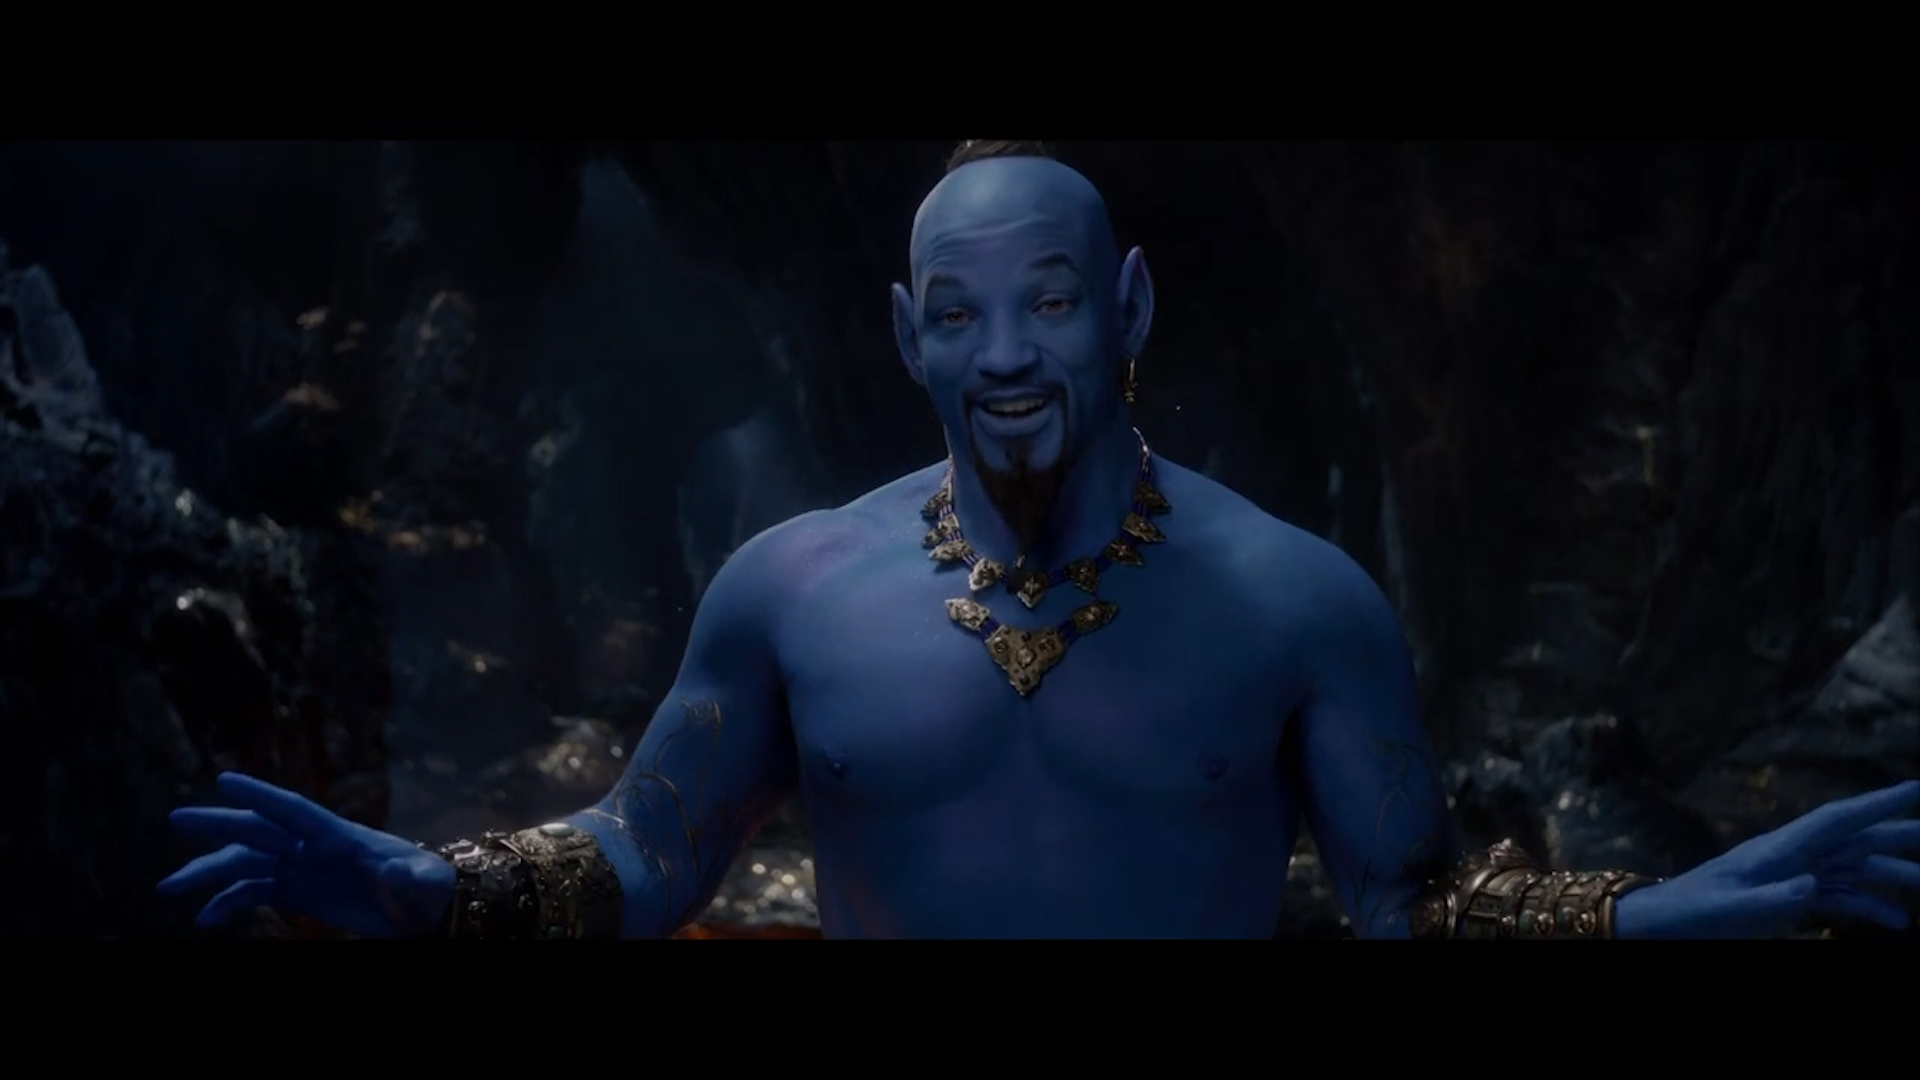 Wendy's Weighs in on Will Smith's Genie in 'Aladdin'